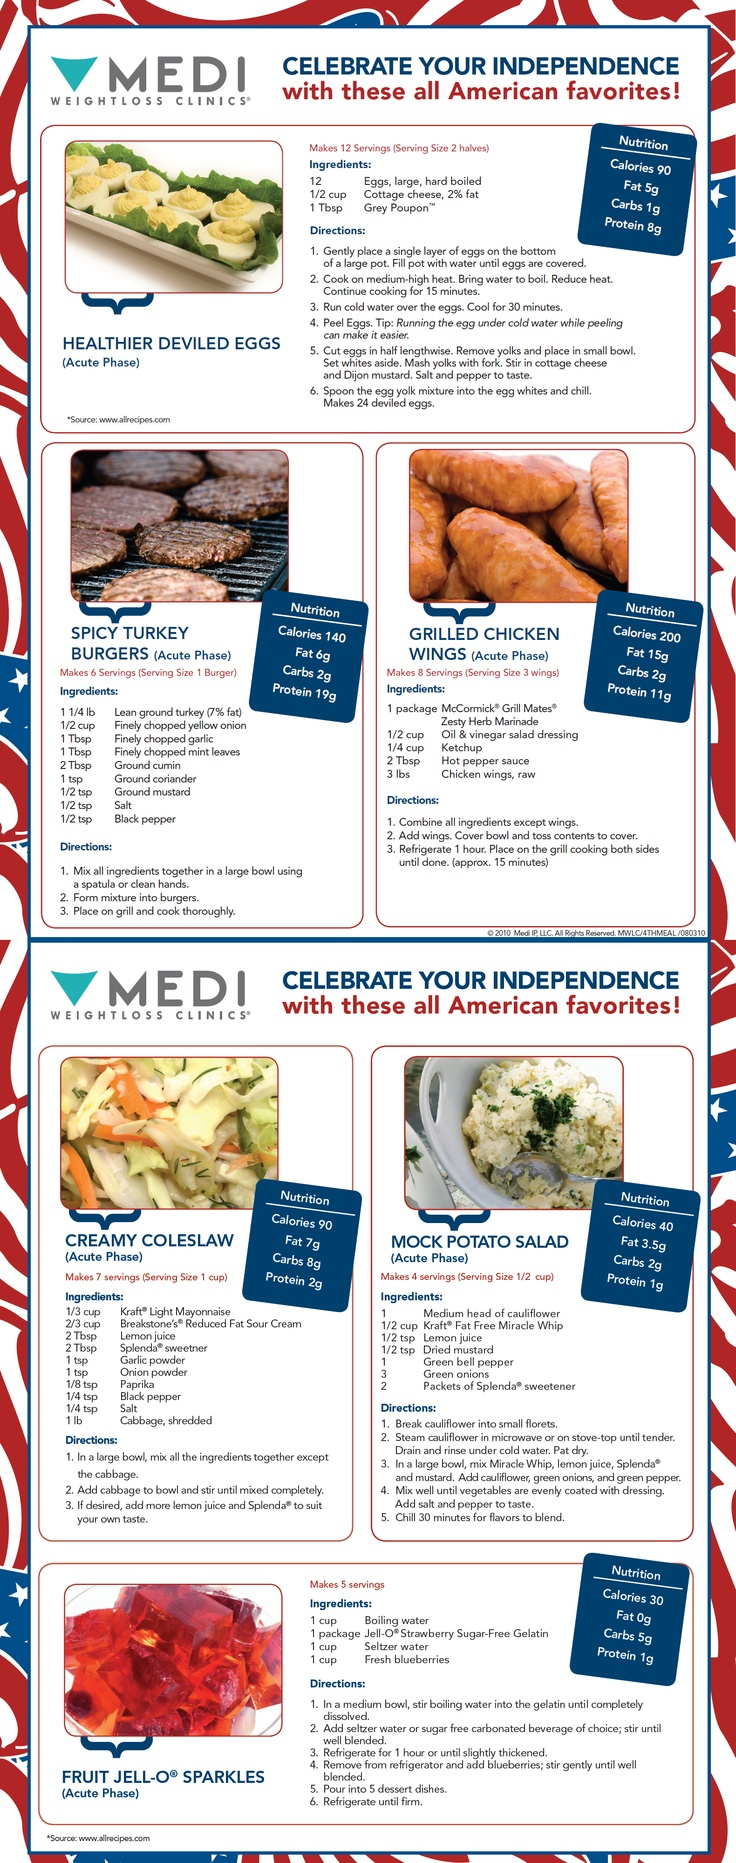 Celebrate your independence with these 4th of July All-American favorites!  #healthy #recipe •	Healthier Deviled Eggs  •	Spicy Turkey Burgers  •	Grilled Chicken Wings  •	Creamy Coleslaw  •	Mock Potato Salad  •	Fruit Jell-O Sparkles